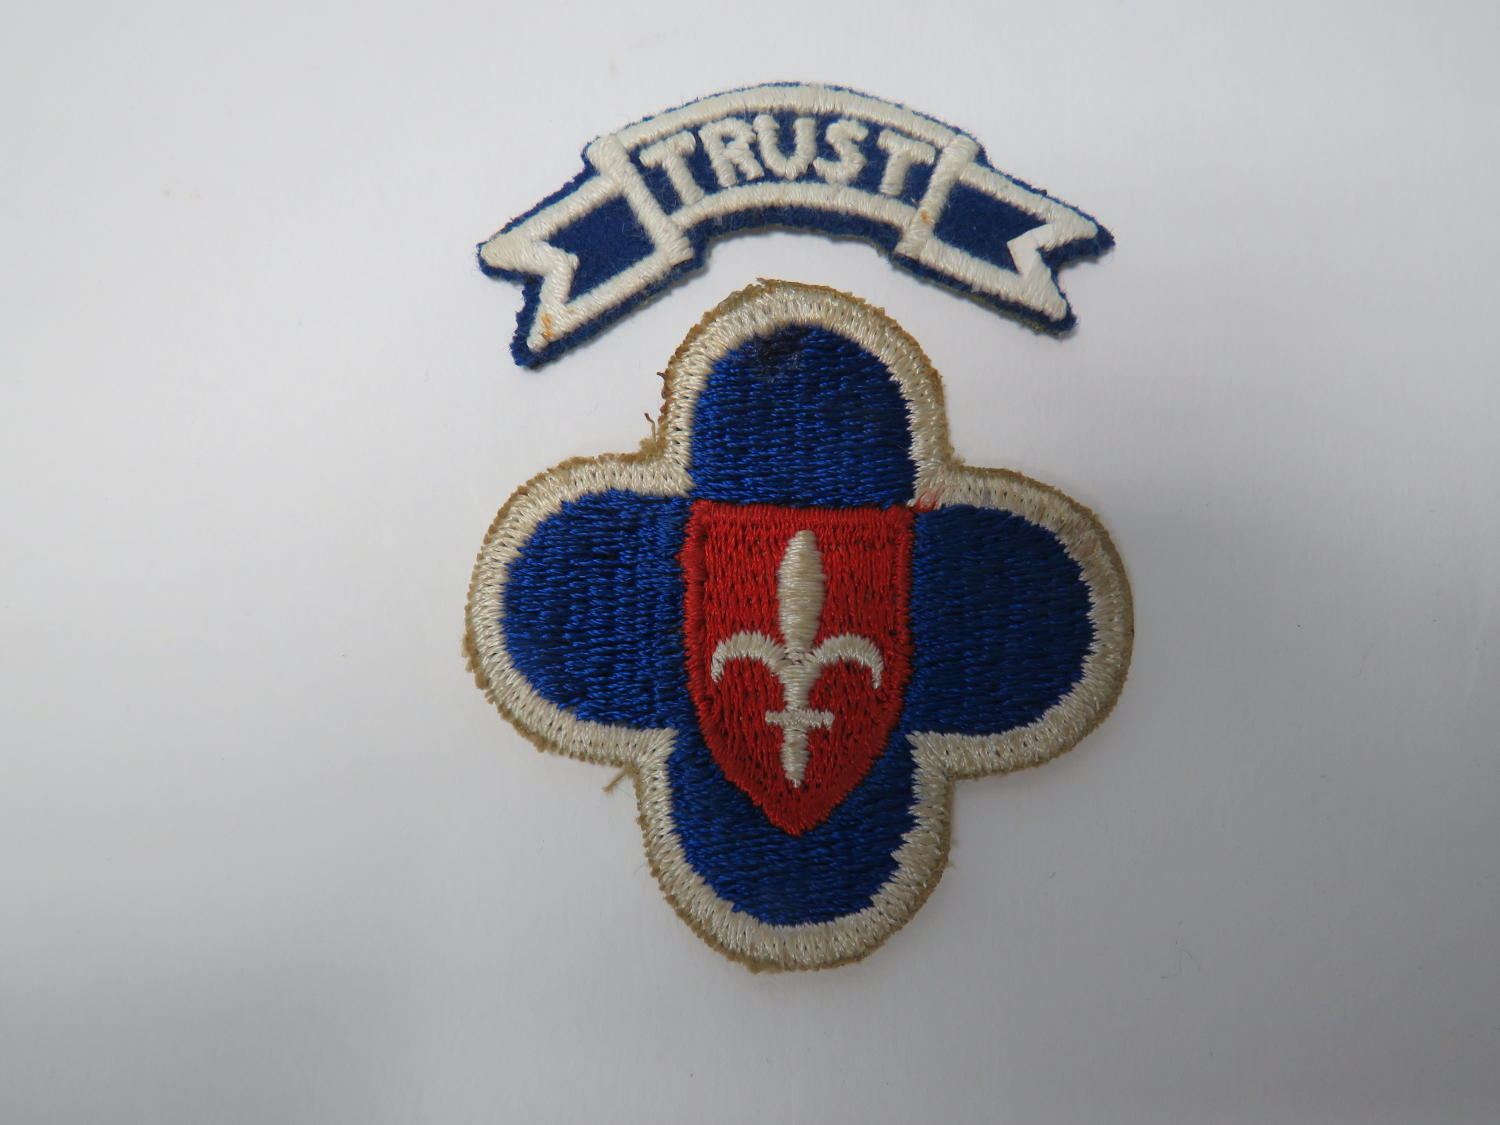 U.S Forces in Trieste Formation Badge